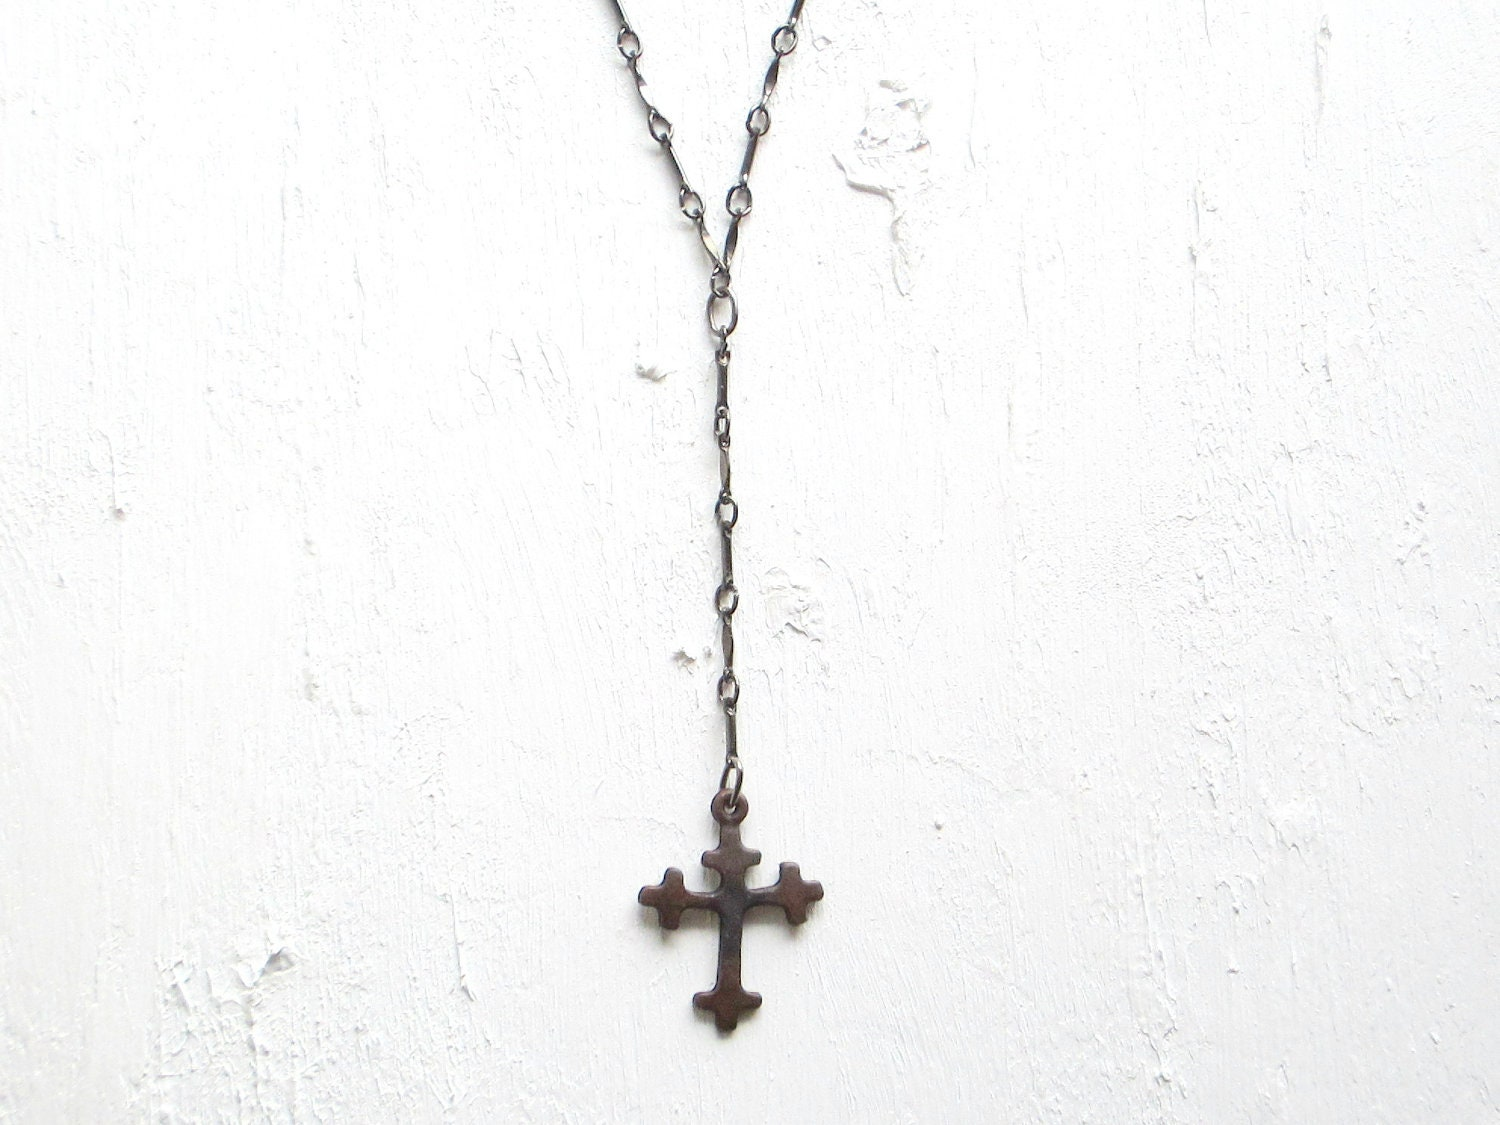 Rosary Necklace Cross Pendant Minimalist Rosary Style Edgy Jewelry Statement Necklace - REBELbyFATE